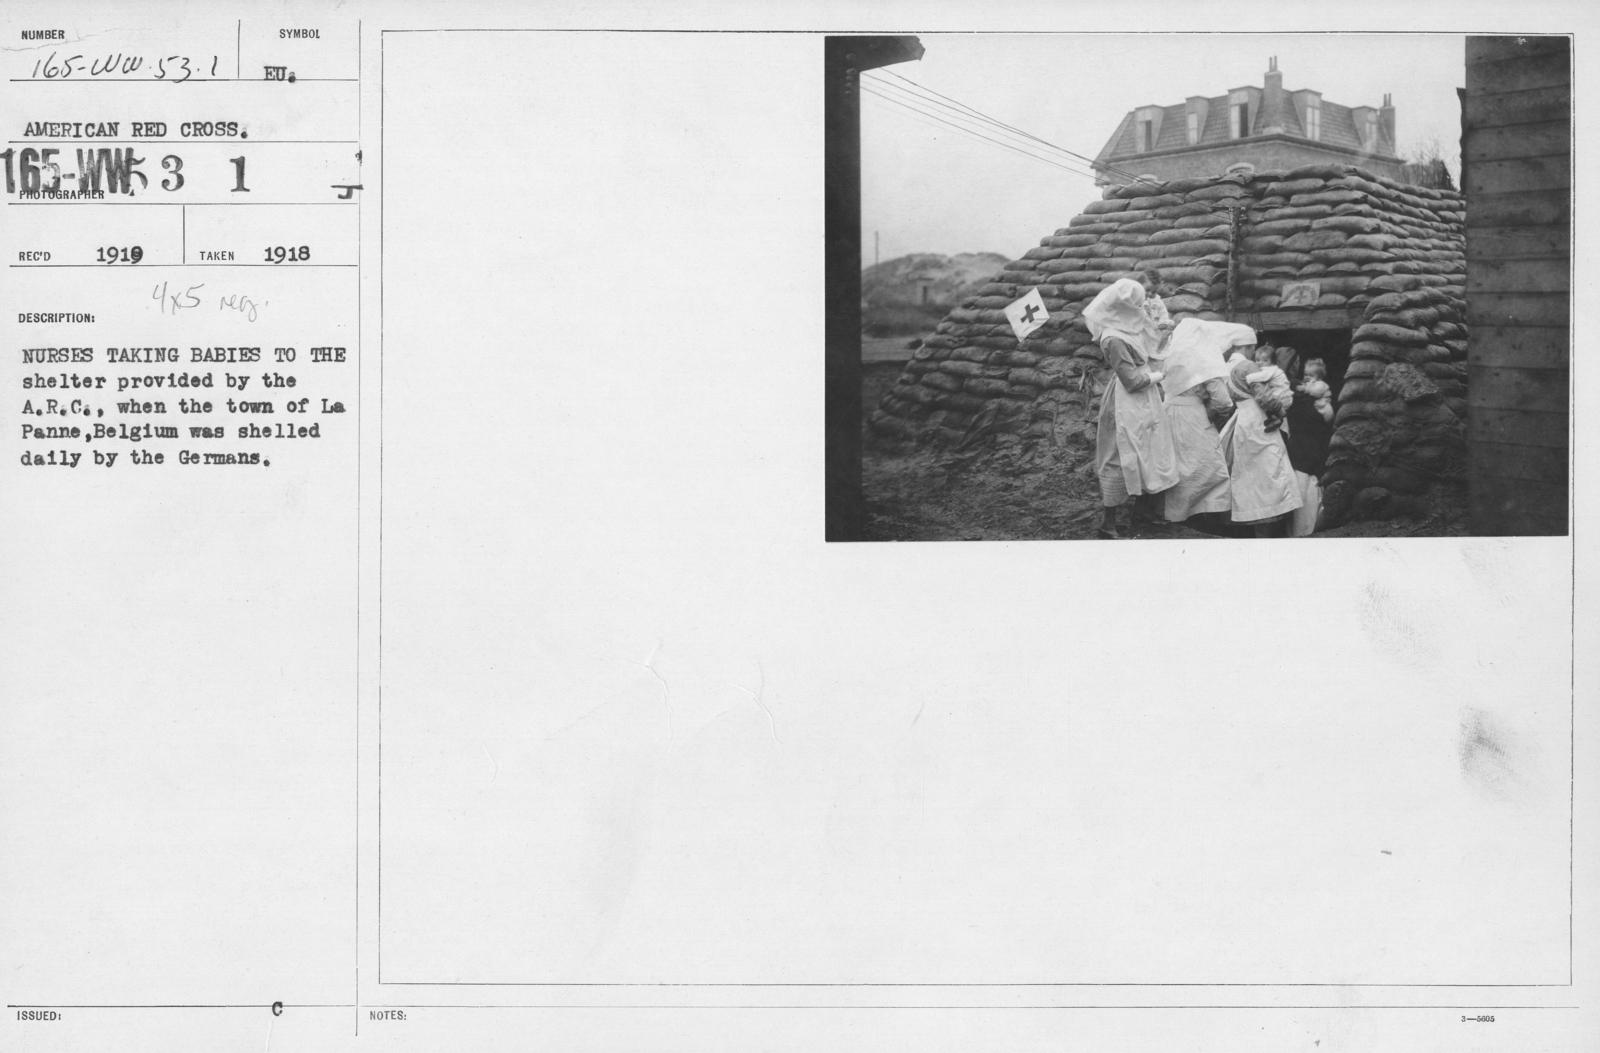 American Red Cross - Miscellaneous - Nurses taking babies to the shelter provided by the A.R.C. when the town of La Panne, Belgium as shelled daily by the Germans